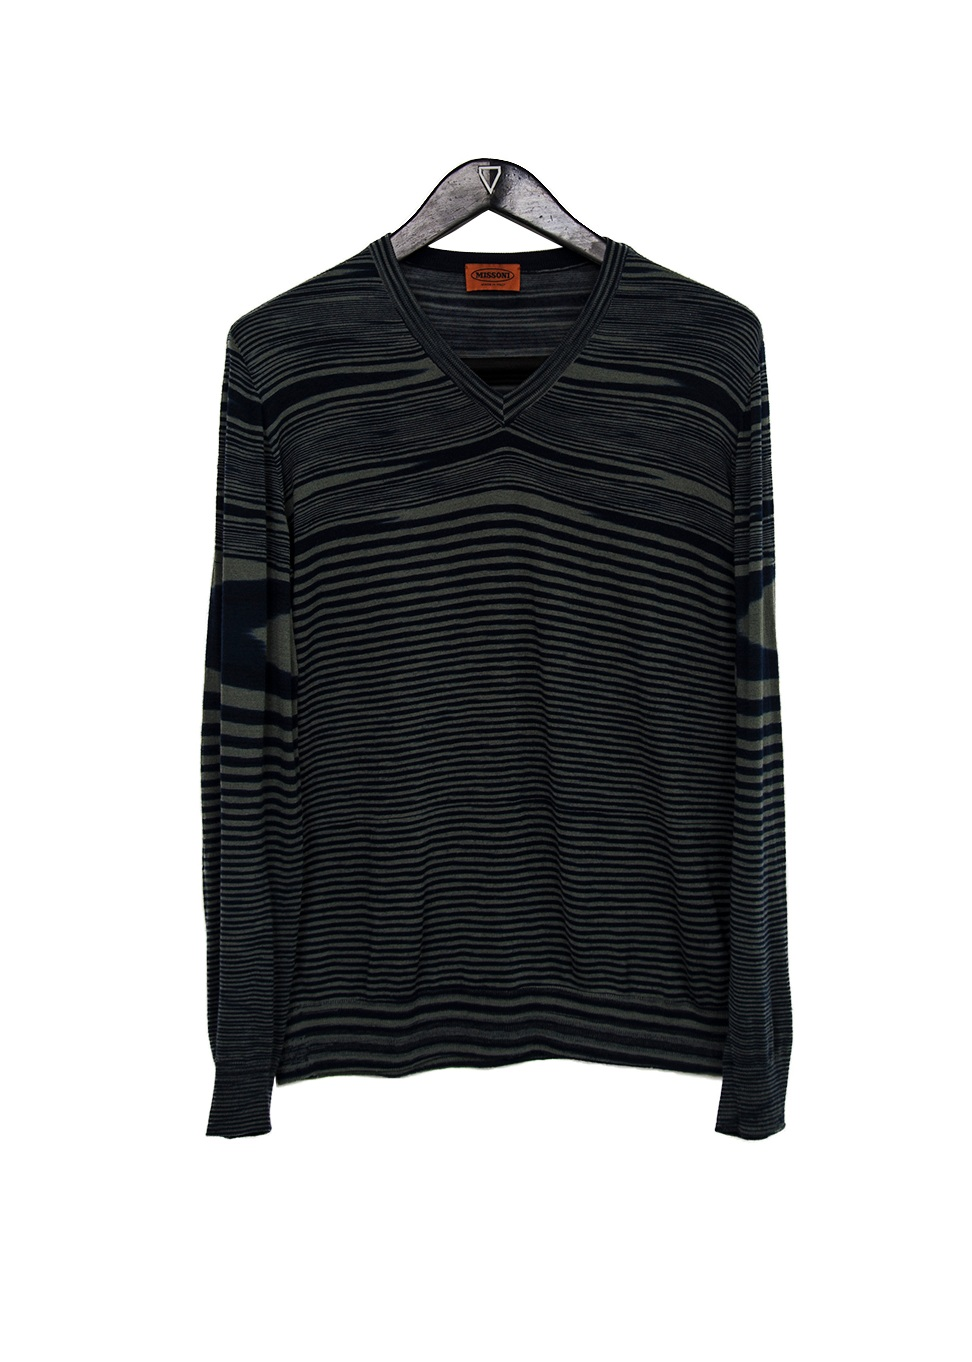 "50 MISSONI SWEATER ""MISSONI-KNT06"""